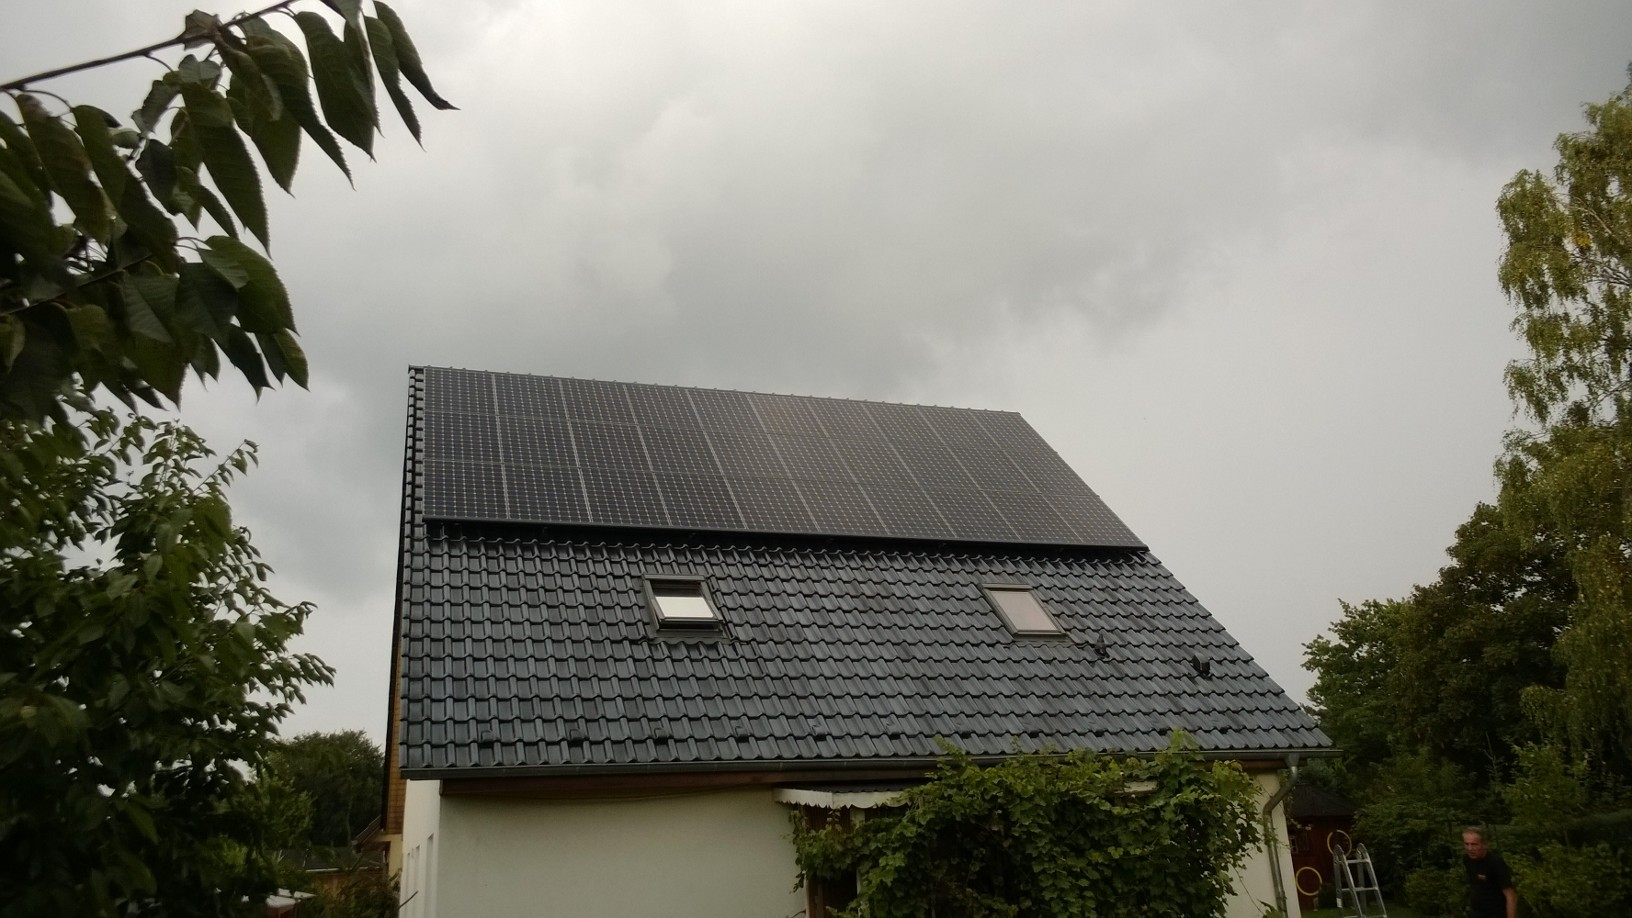 9,91 kWp Sunpower in Bernau bei Berlin